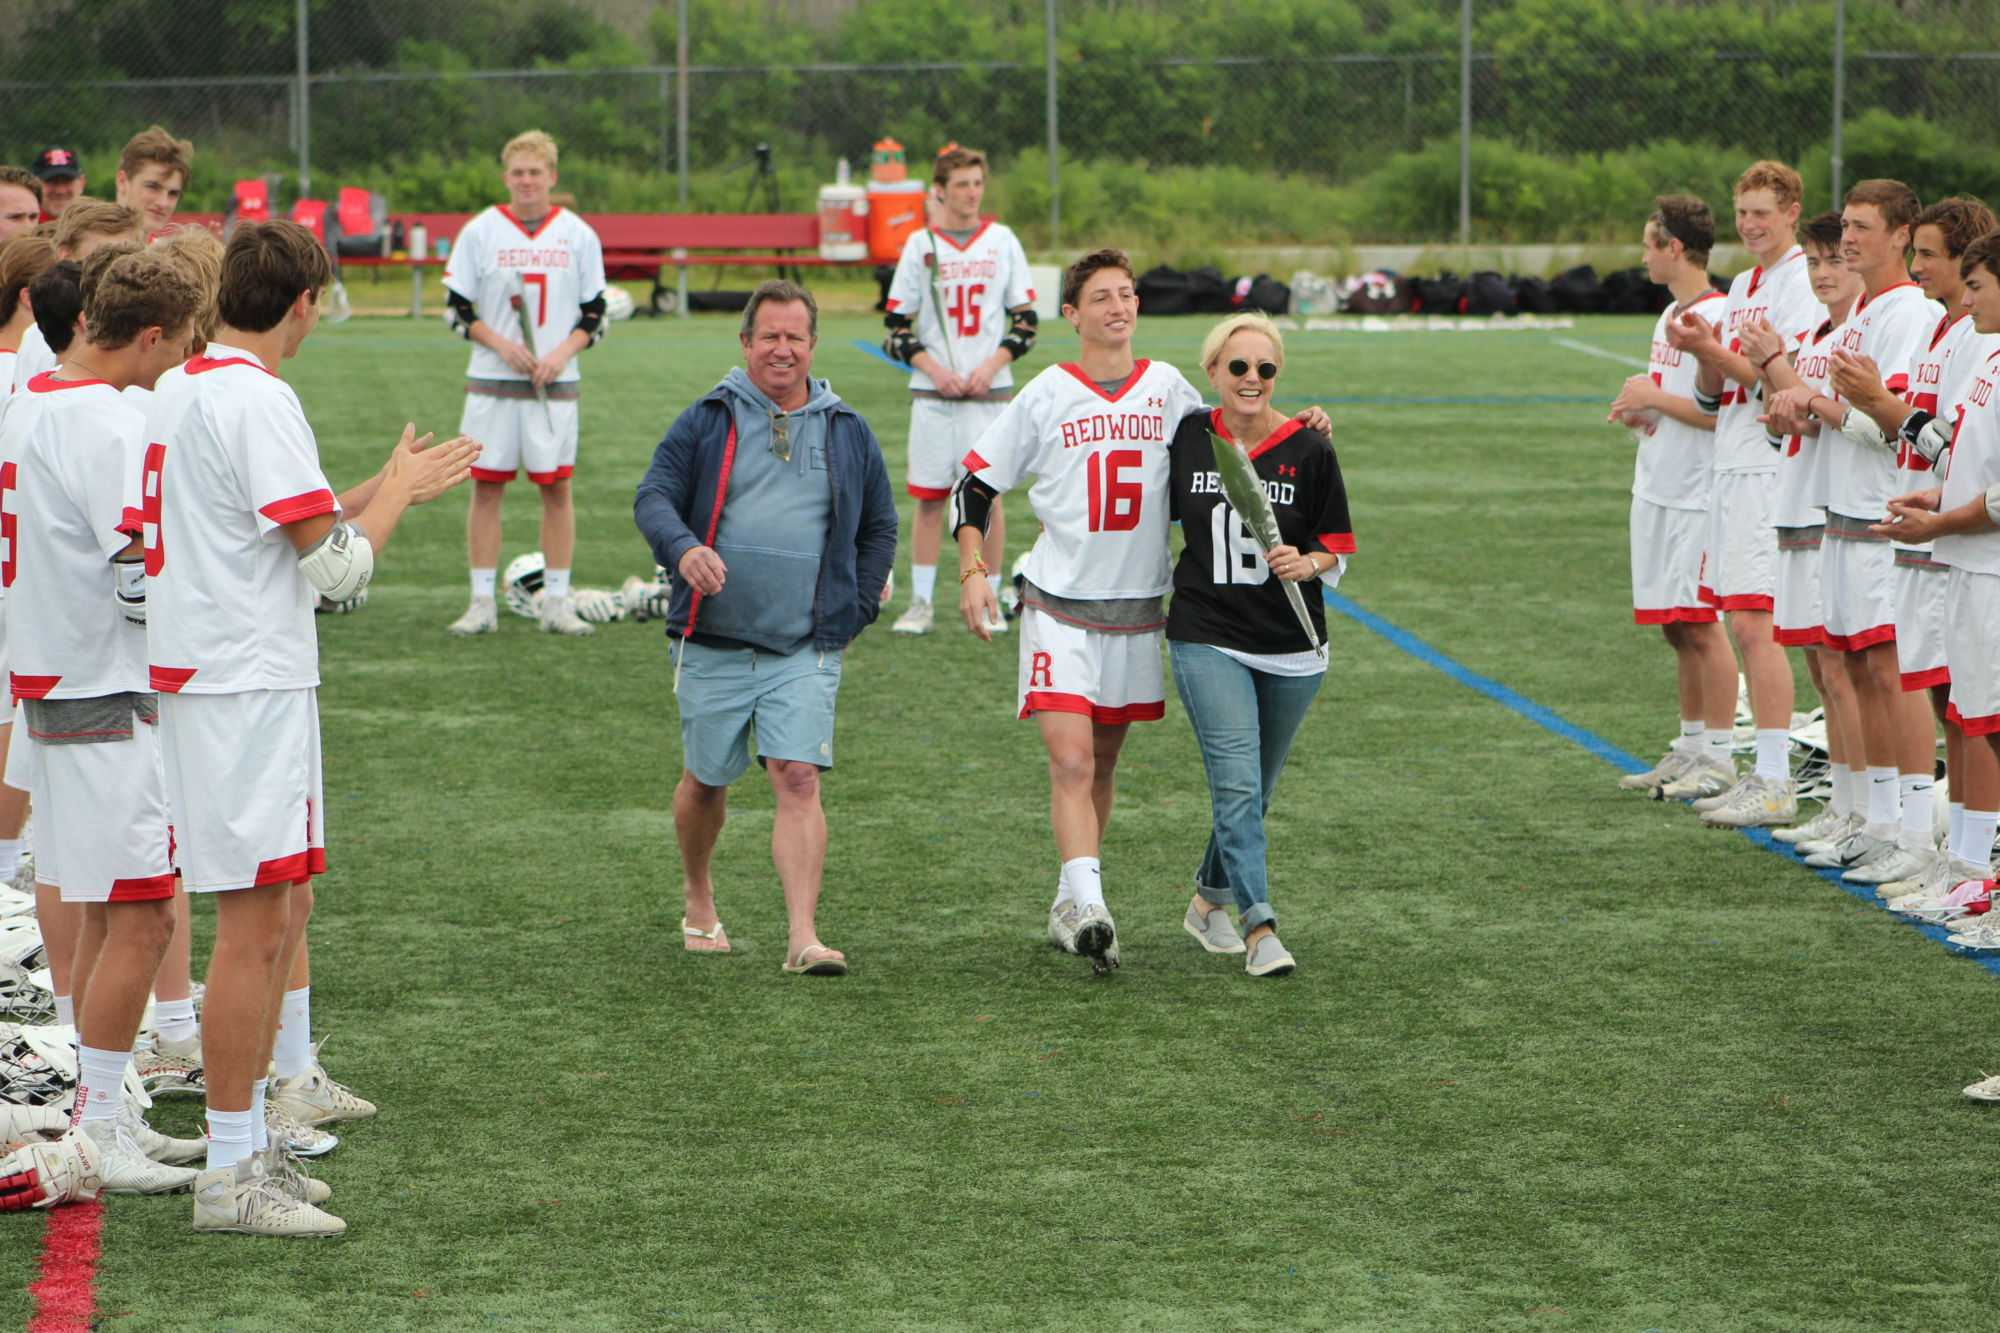 Reeser+walks+with+his+parents+to+celebrate+Senior+Day+before+the+game+begins